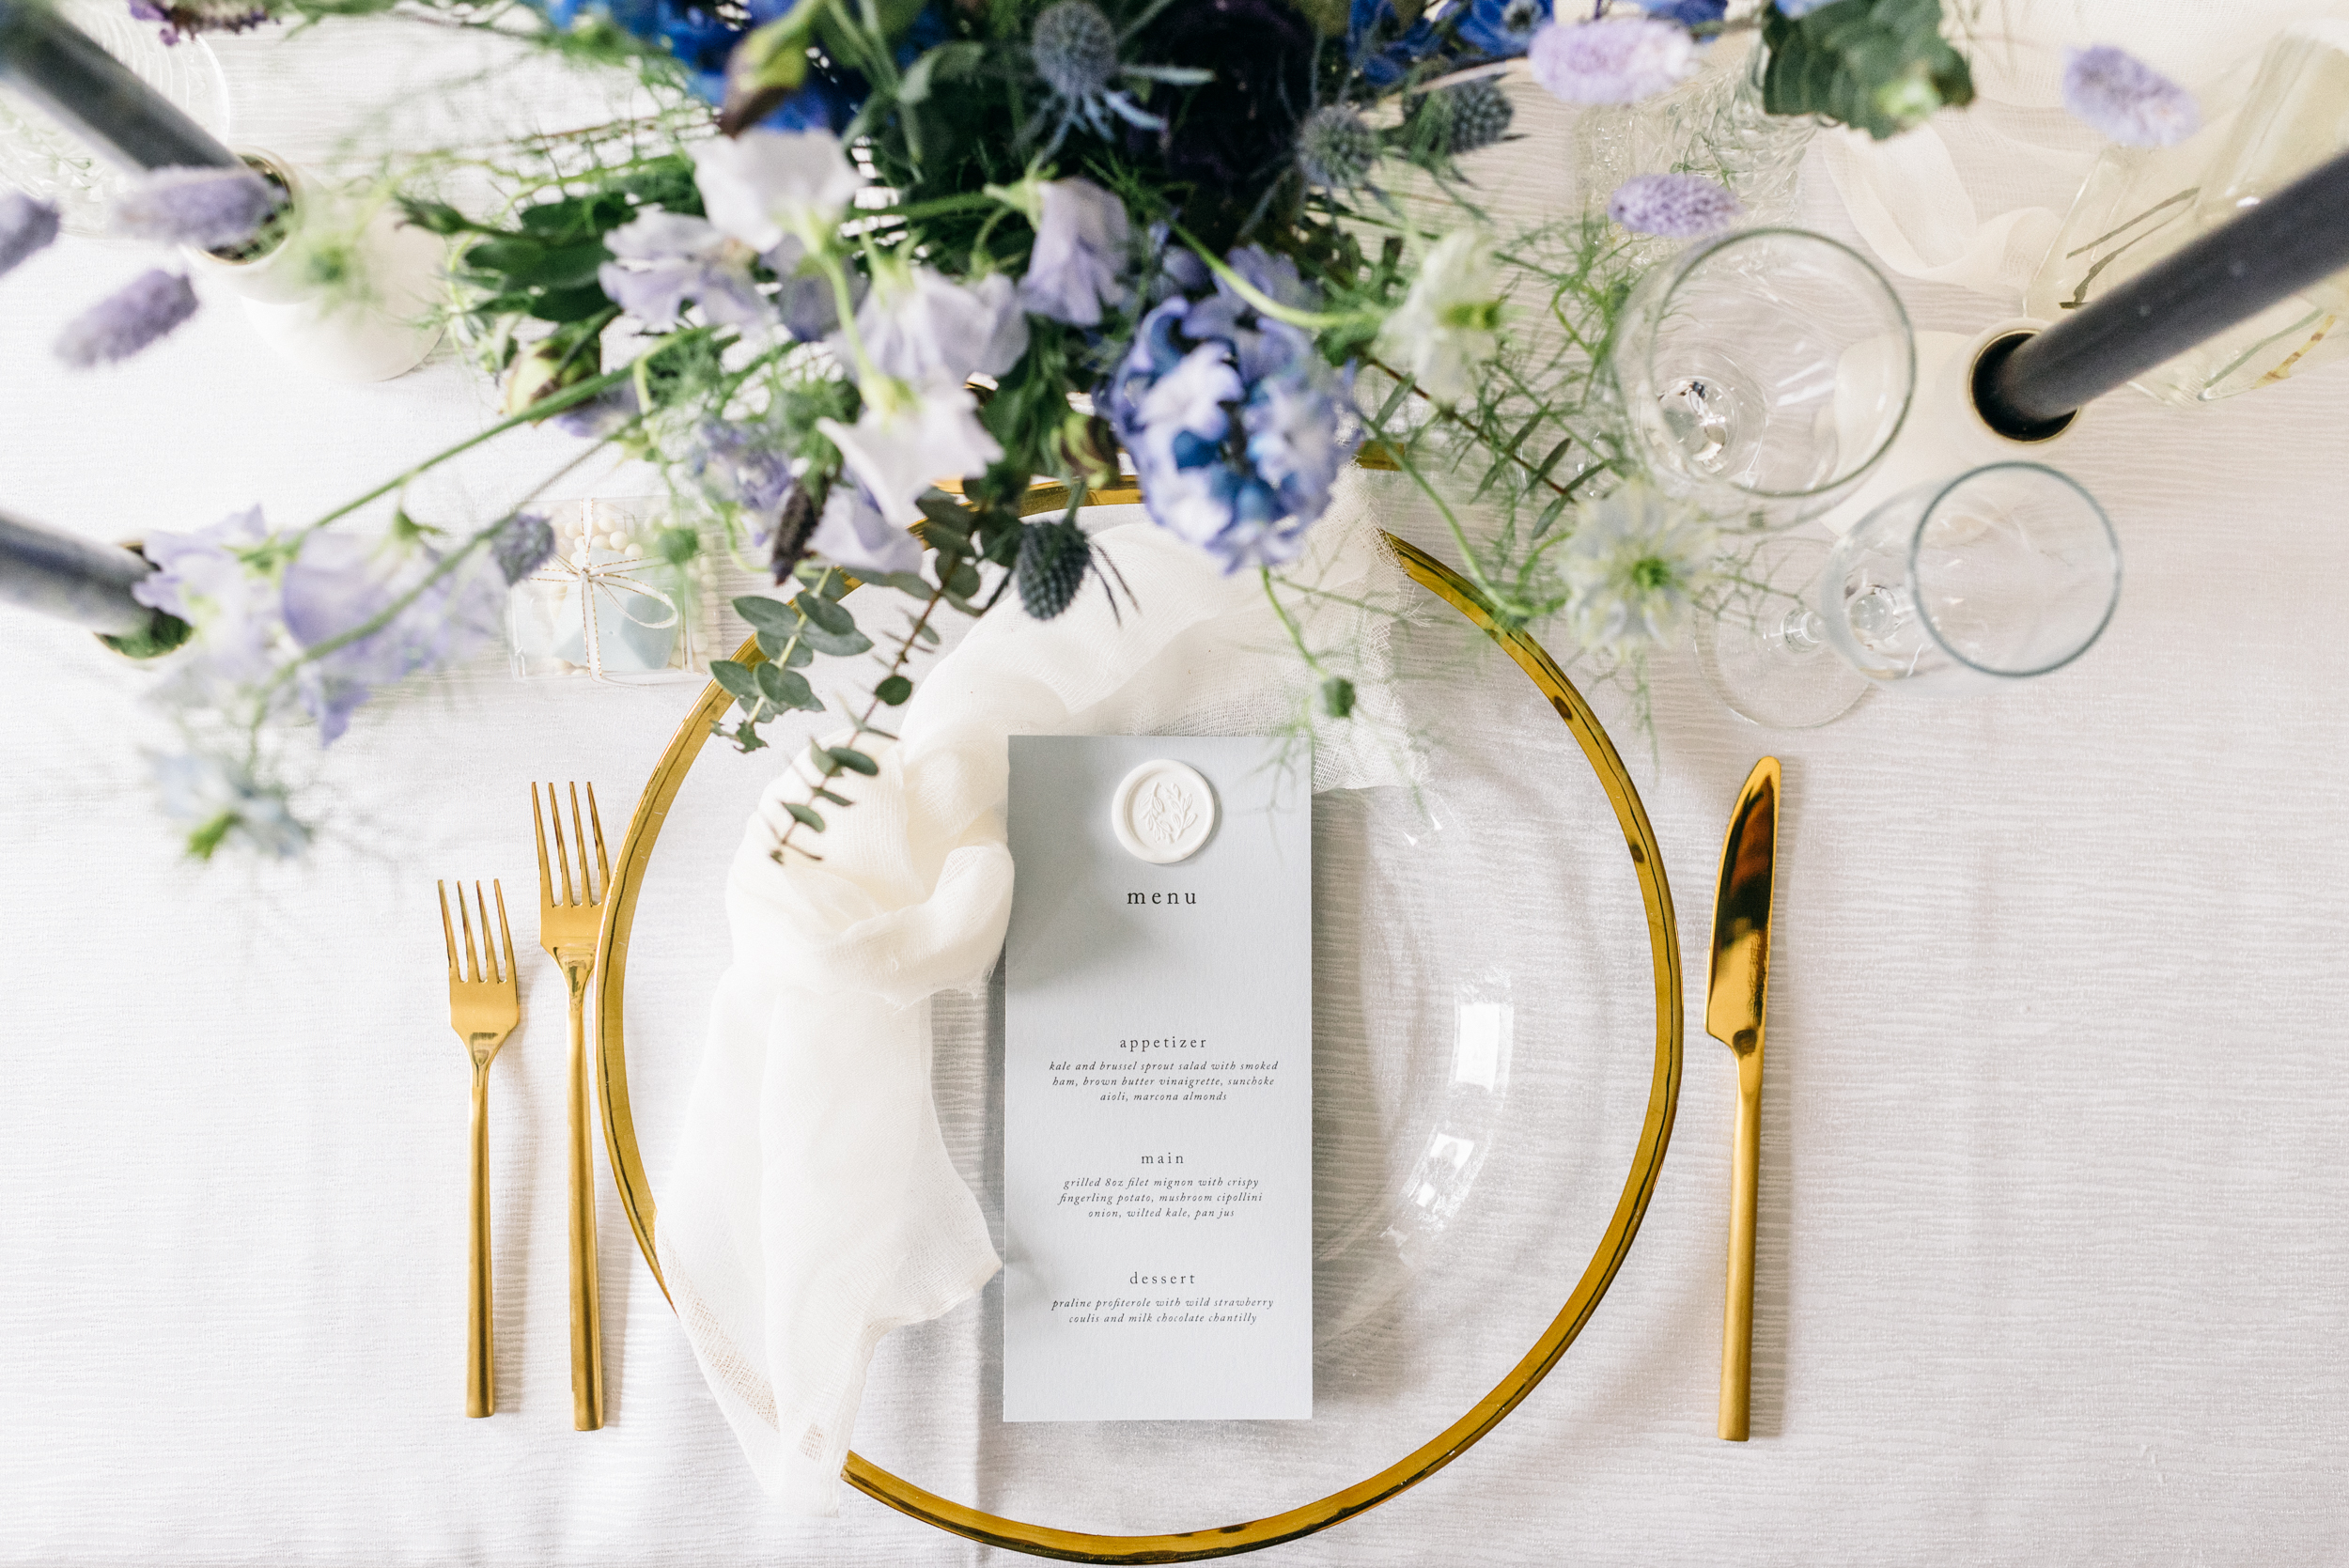 styled-tablescapes-44.jpg